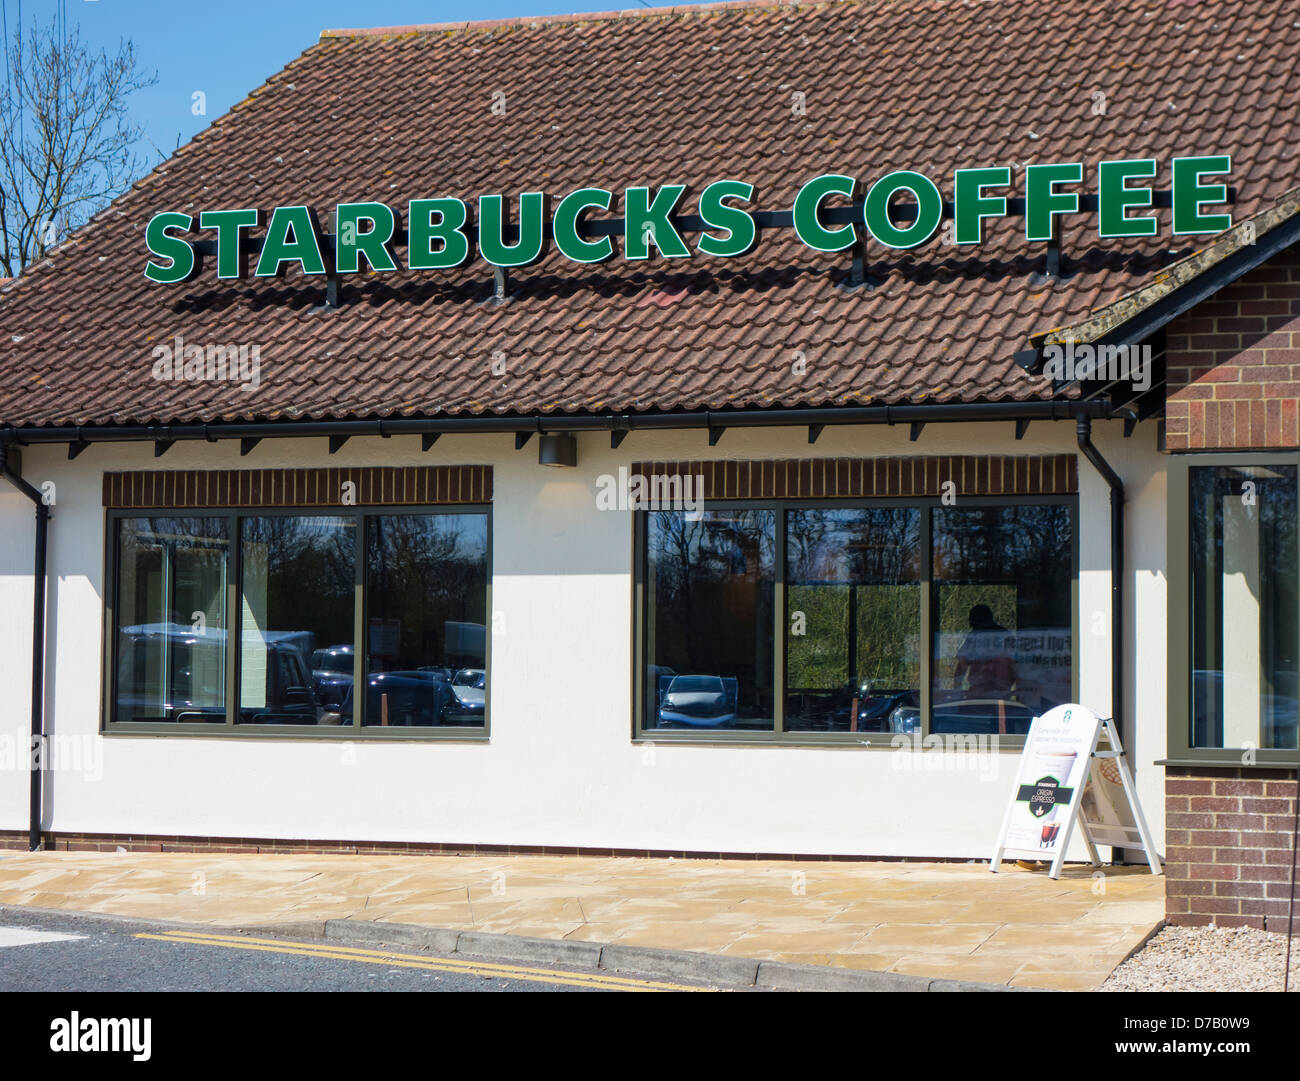 Starbucks Coffee outlet - Stock Image